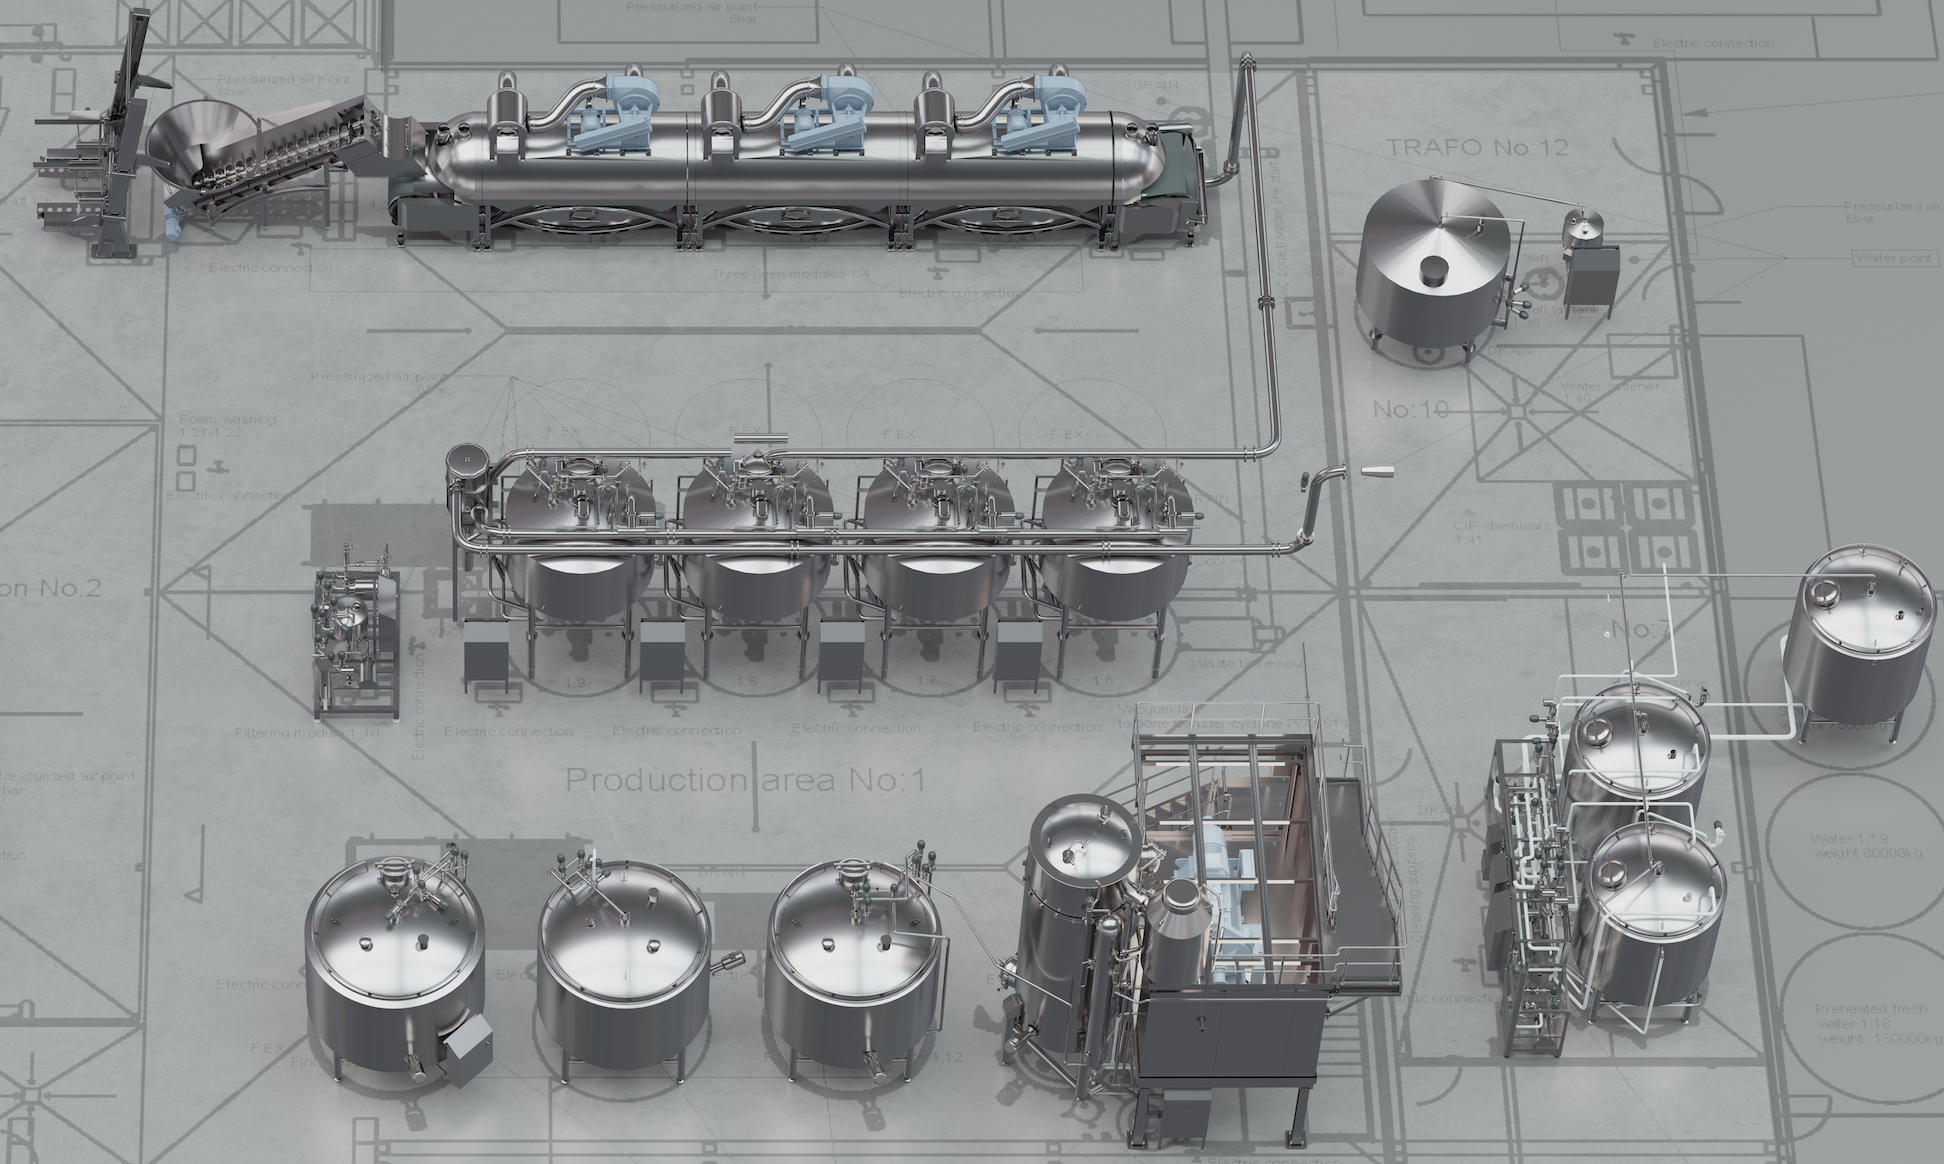 Coctio large volume production line for high-quality natural bone broth, sauce and soup production